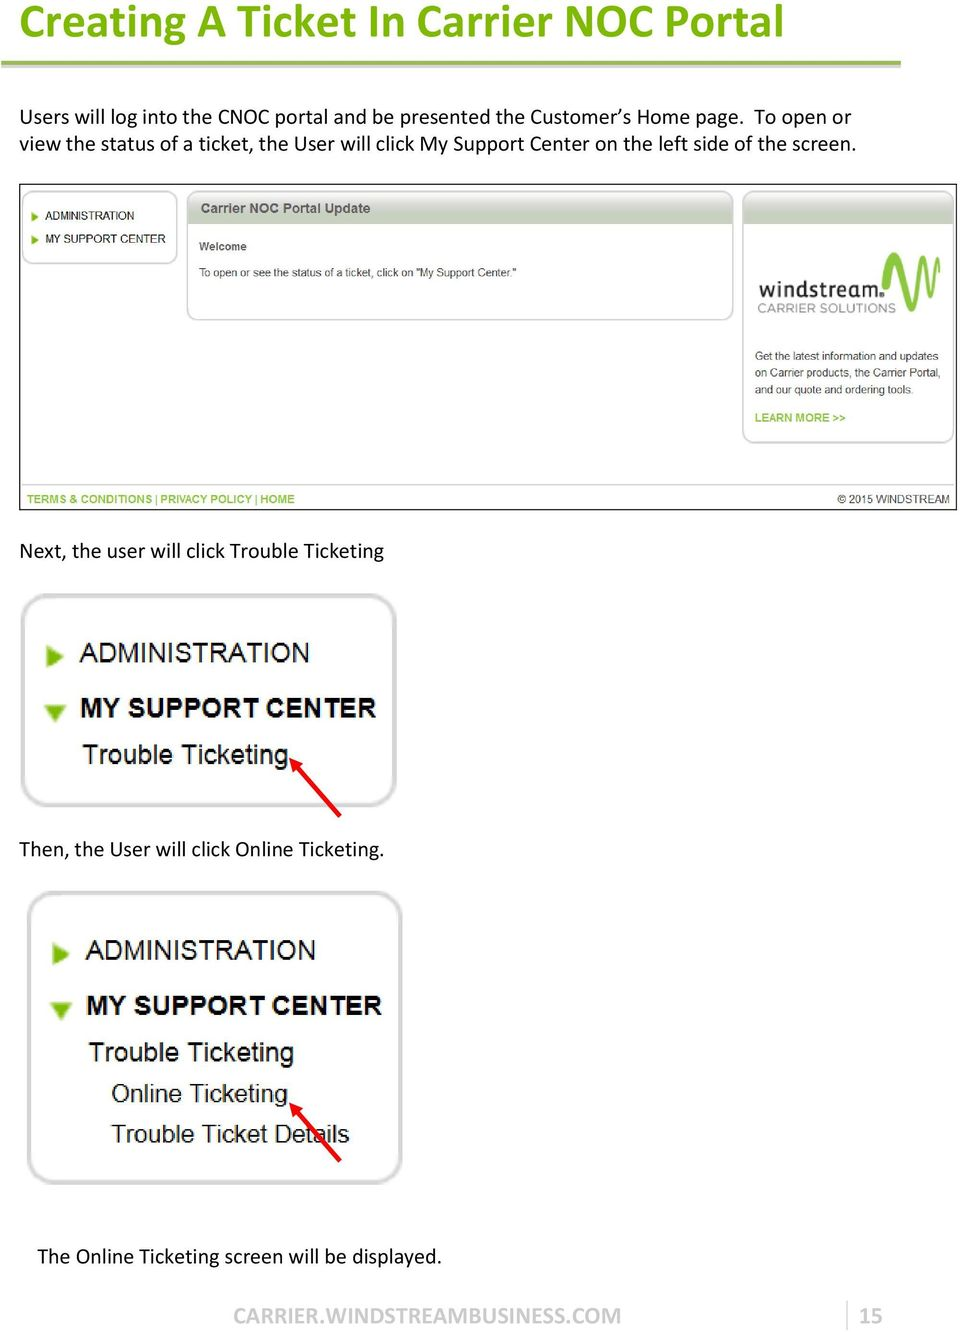 To open or view the status of a ticket, the User will click My Support Center on the left side of